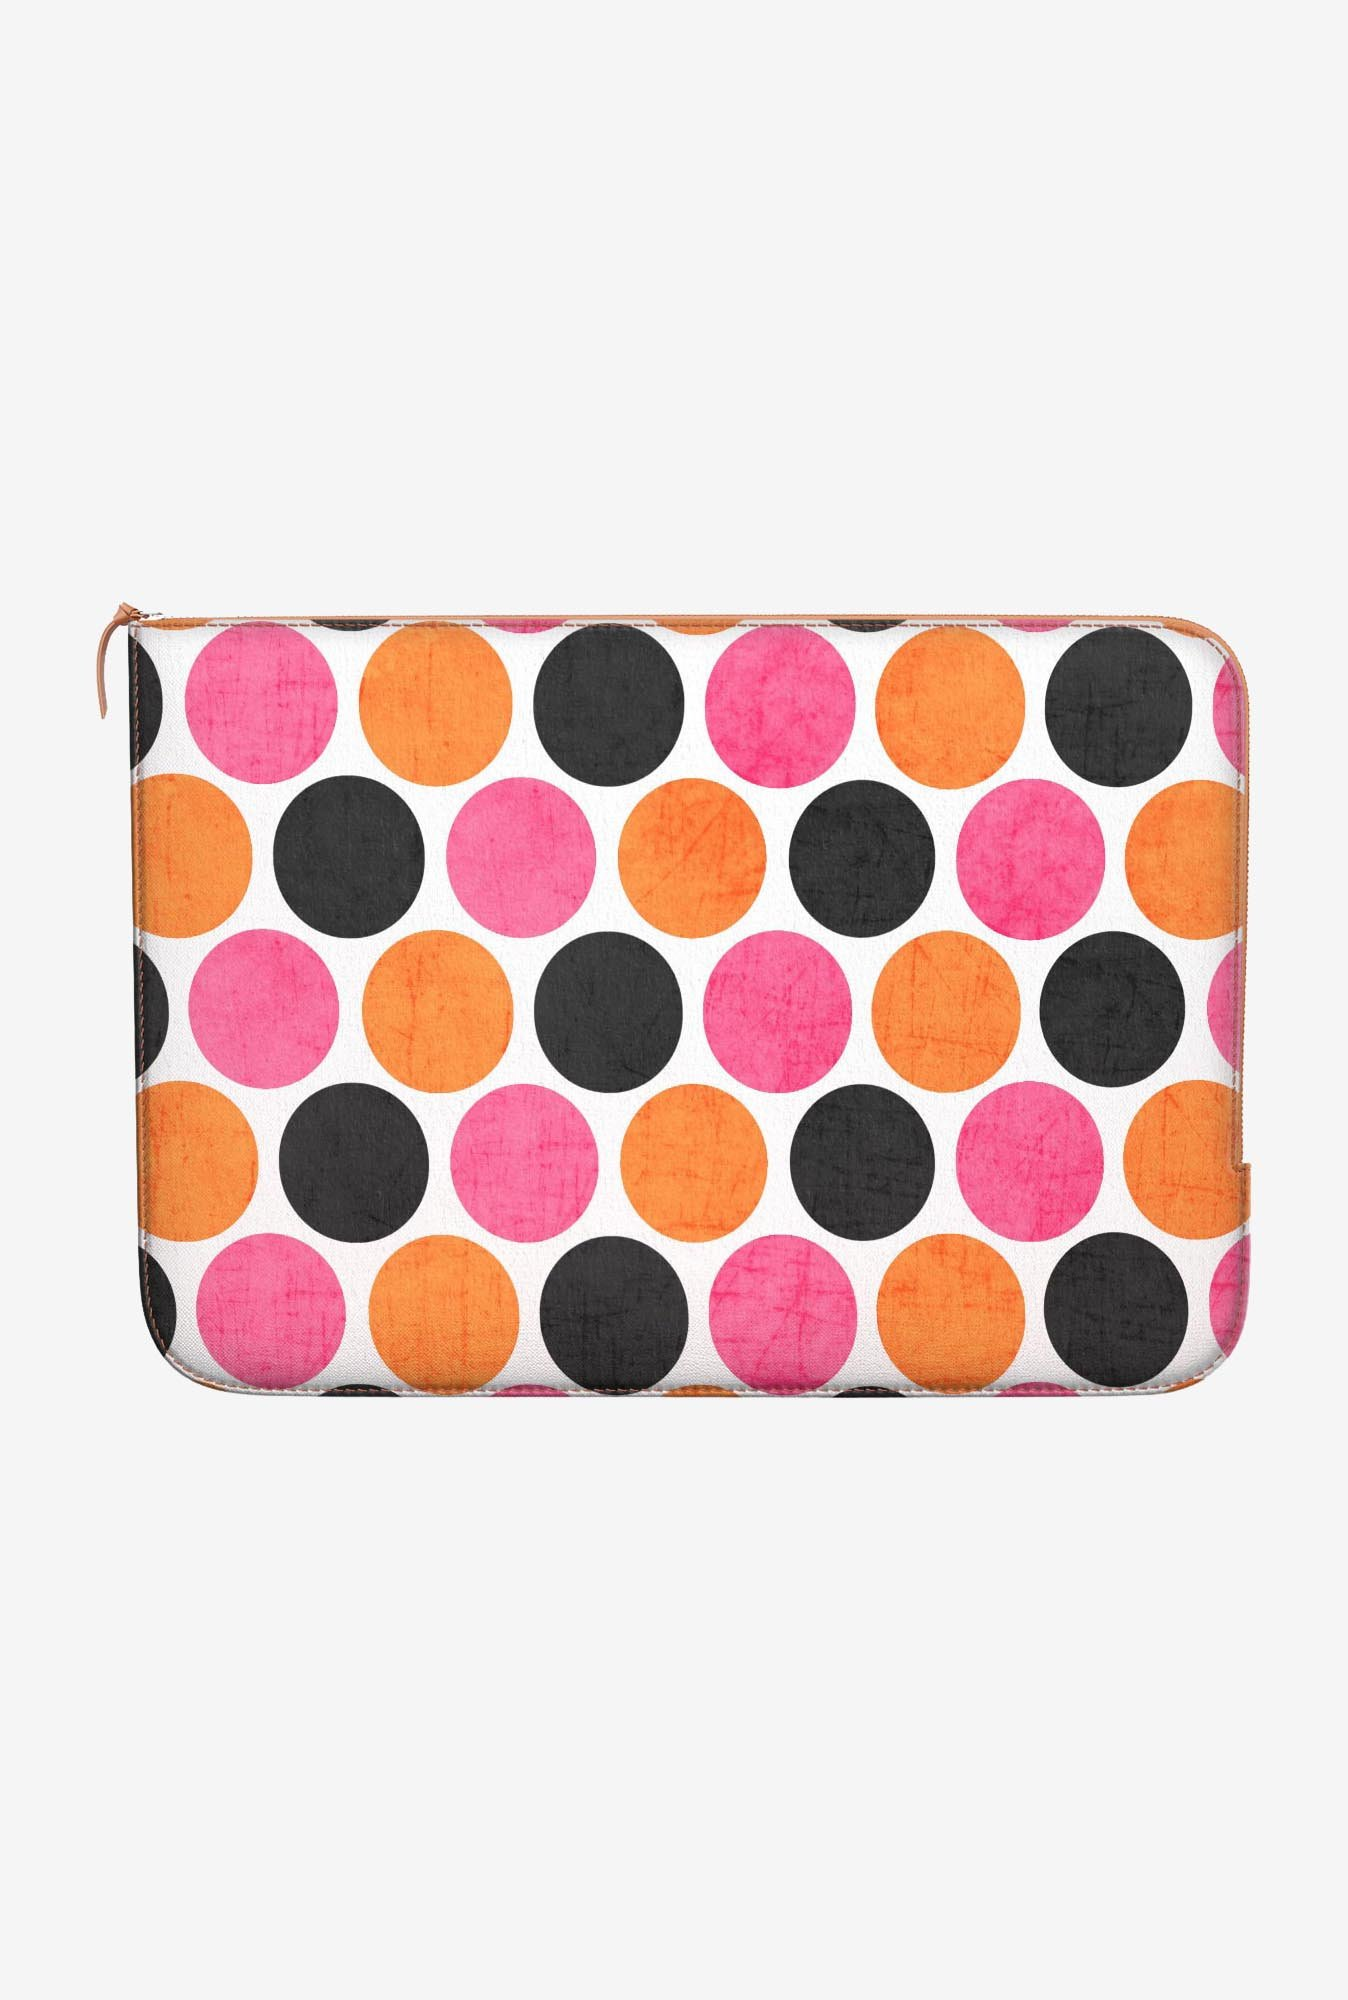 DailyObjects Polka Dots MacBook 12 Zippered Sleeve